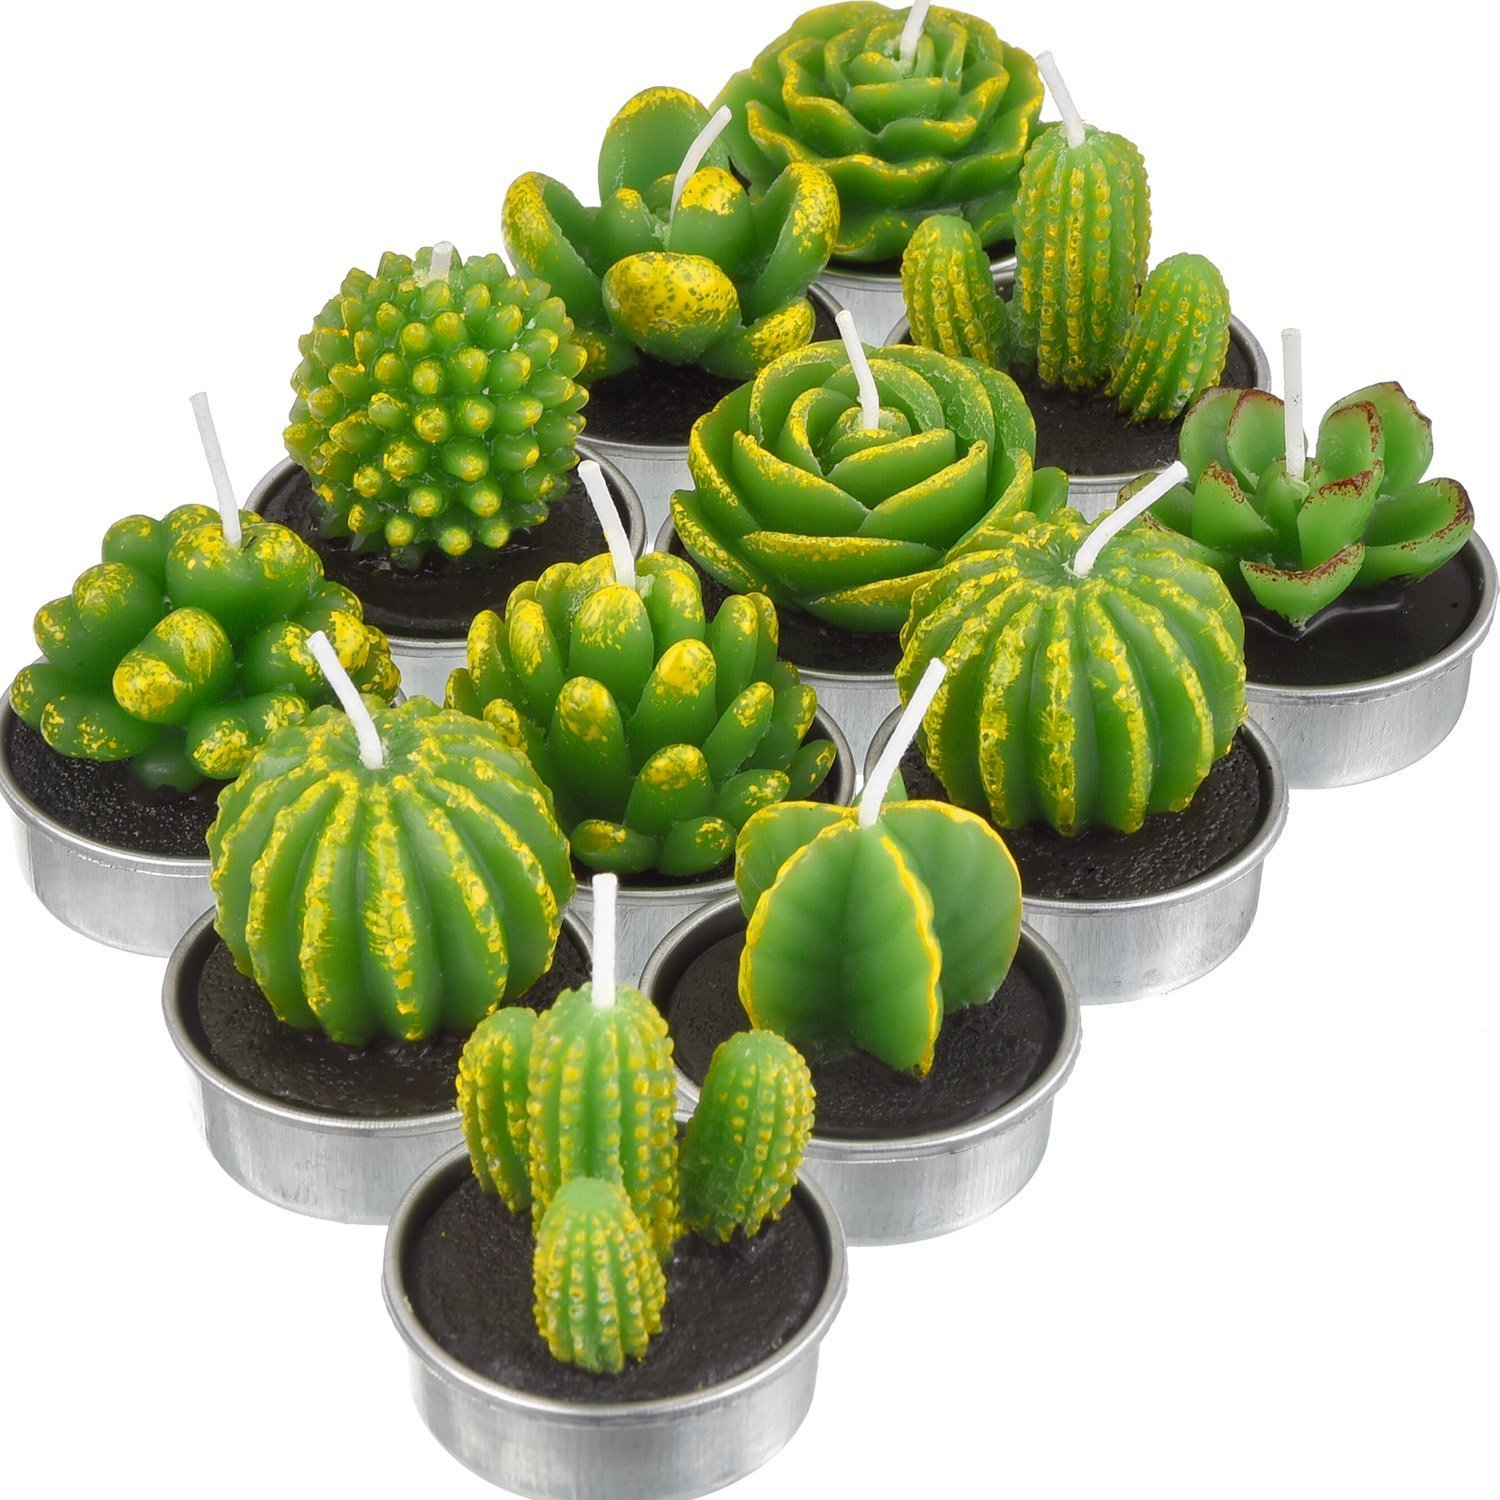 KisSealed 12 Pieces Cactus Tealight Candles Handmade Delicate Succulent Cactus Candles for Party Wedding Spa Home Decoration Gifts ONE-1